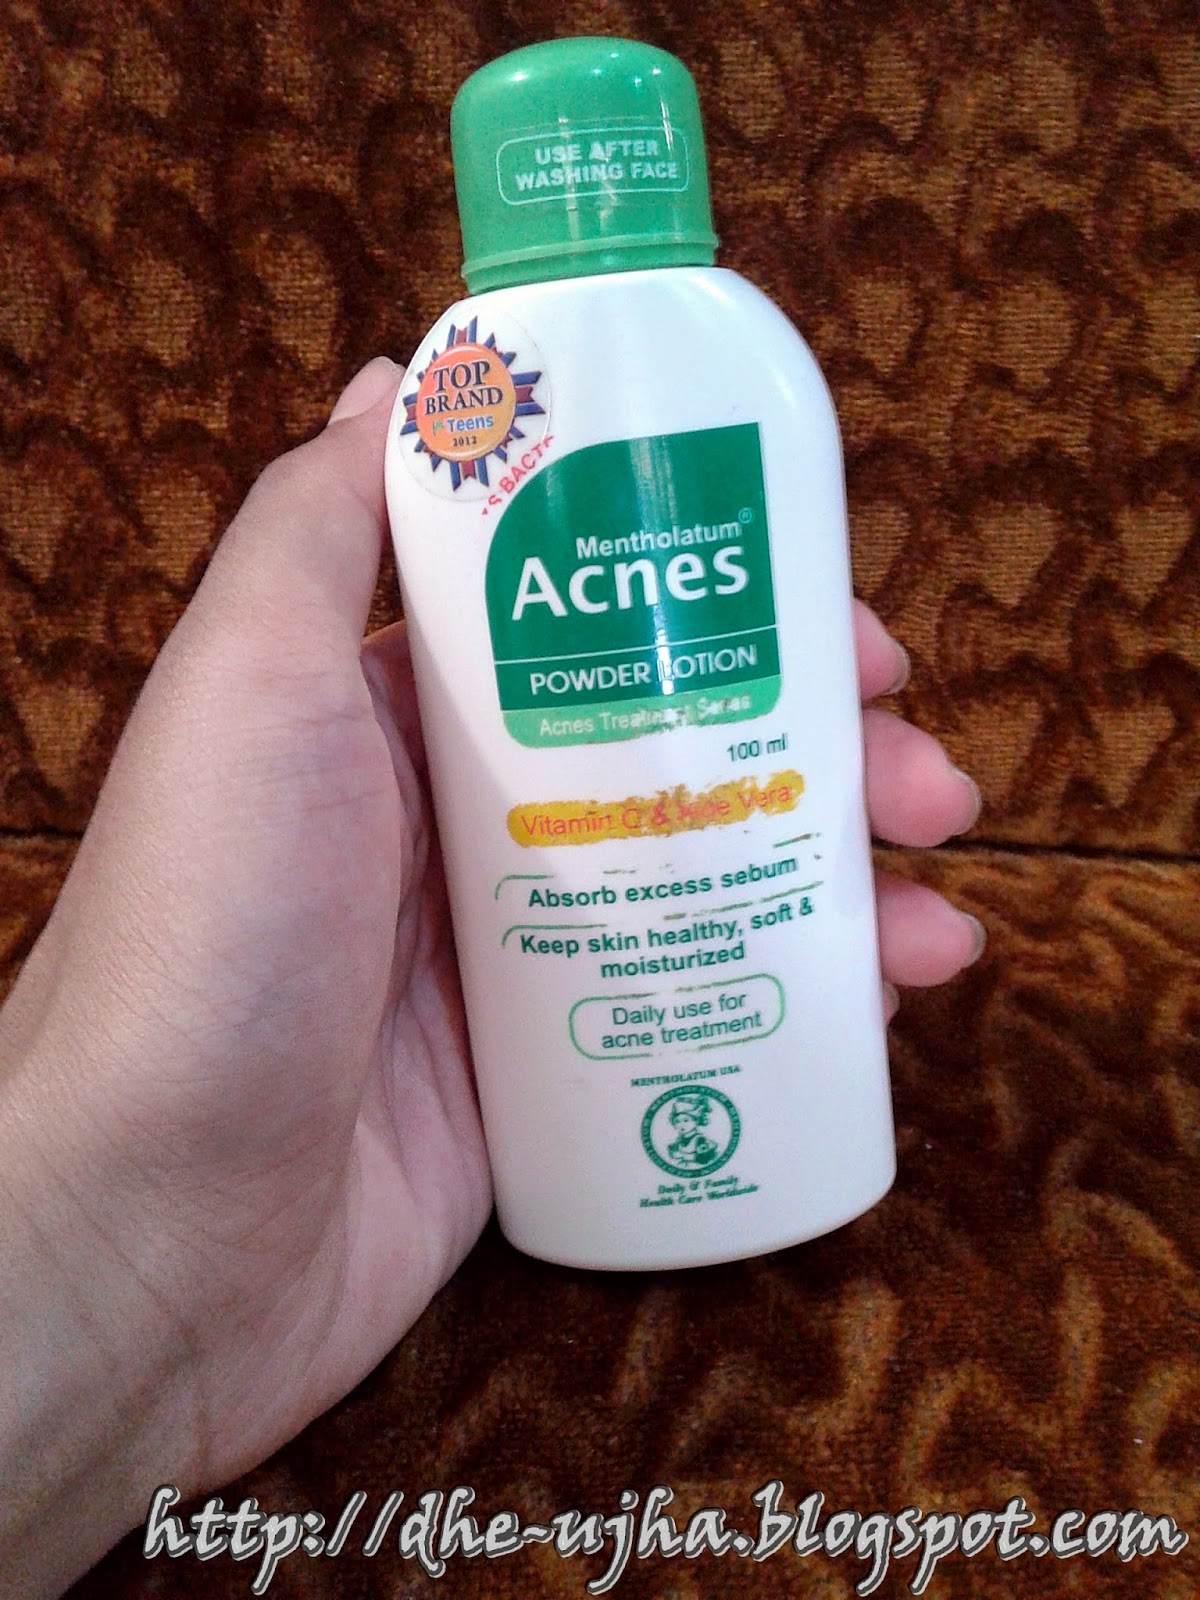 tampak depan acnes powder lotion